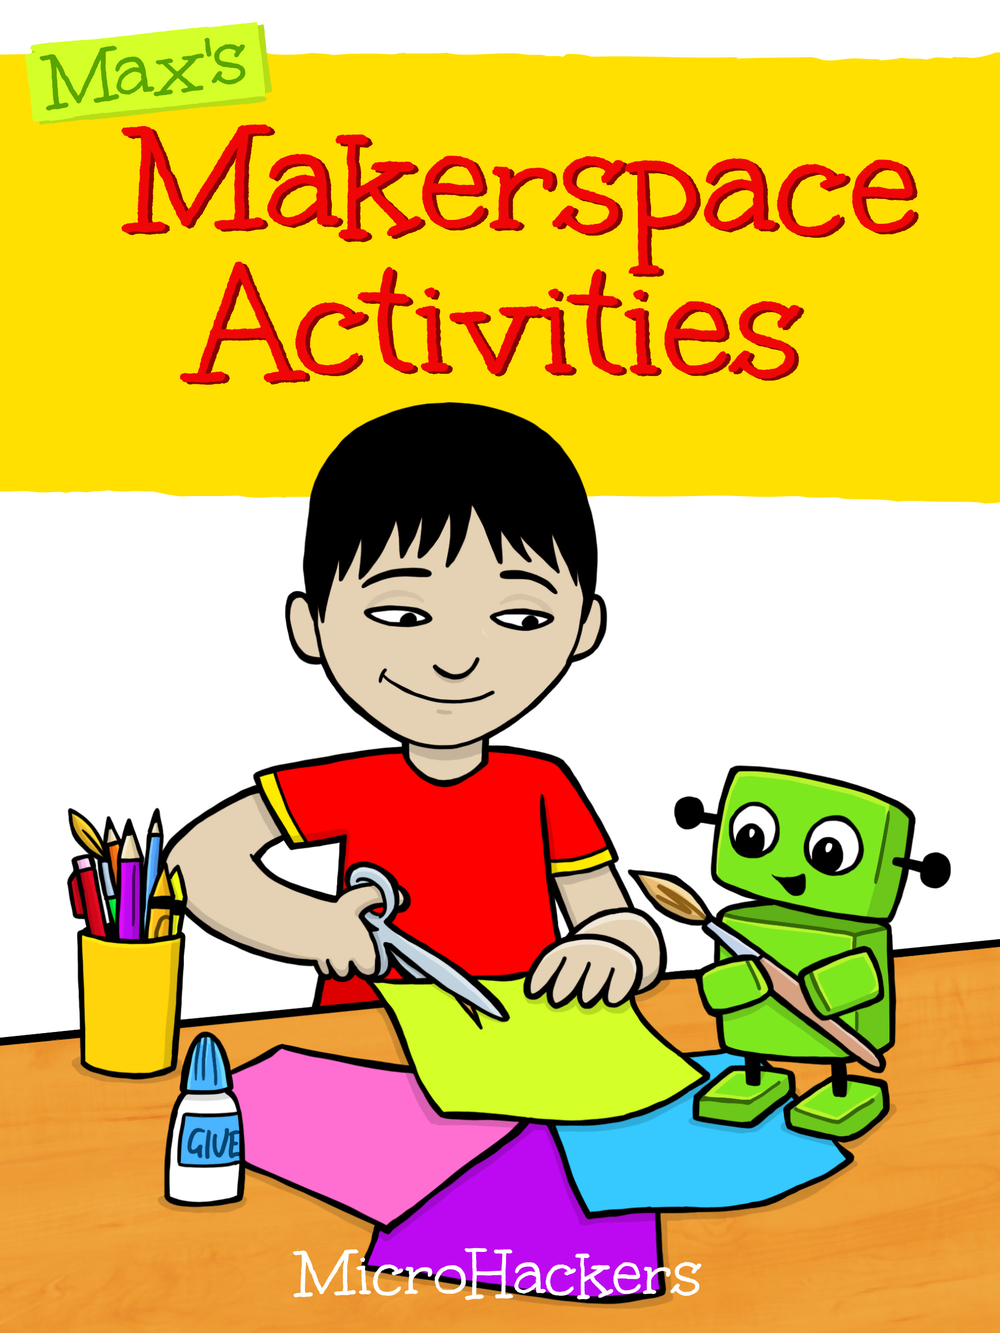 Makerspace Activities.jpg